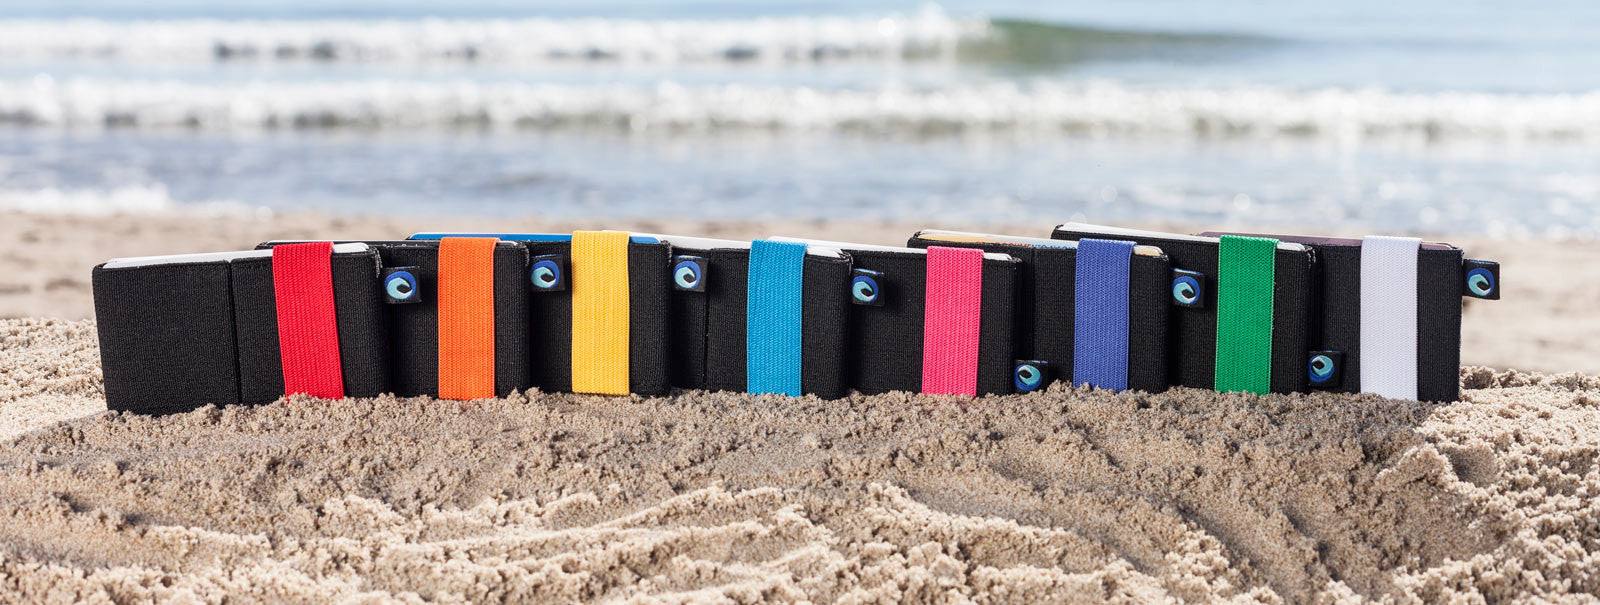 La cartera cómoda y minimalista. Averday Hawaii Pro en la playa